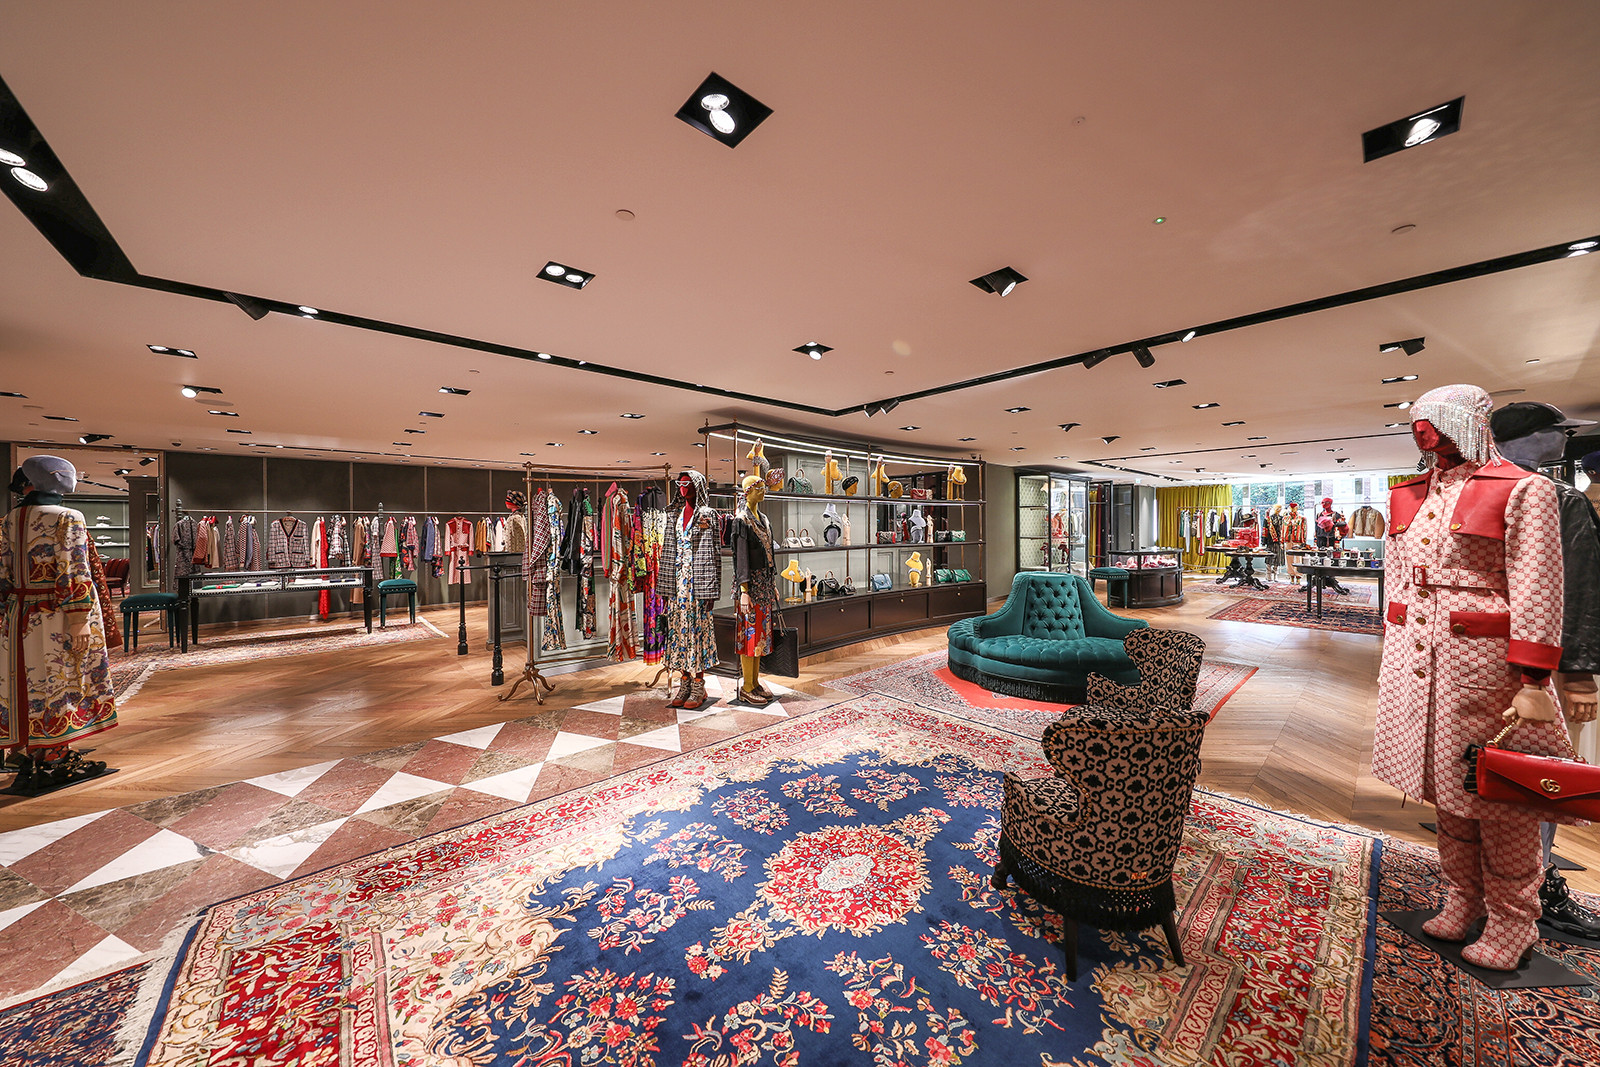 Take a Look at Gucci's Revamped Flagship Store in London